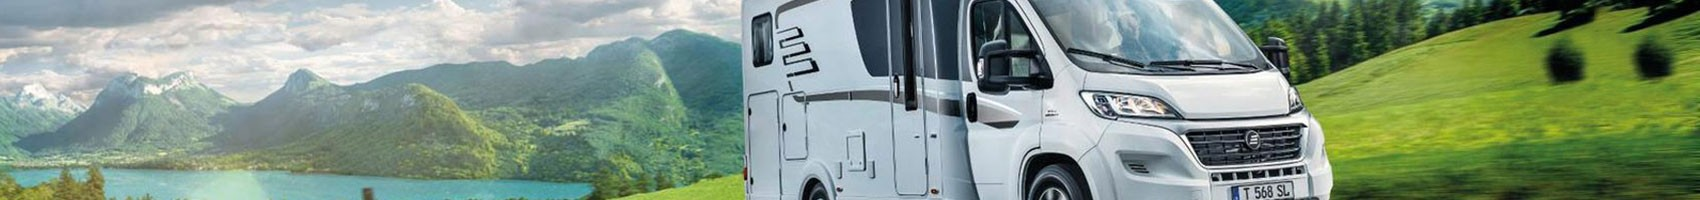 An Introduction to Chausson Motorhomes